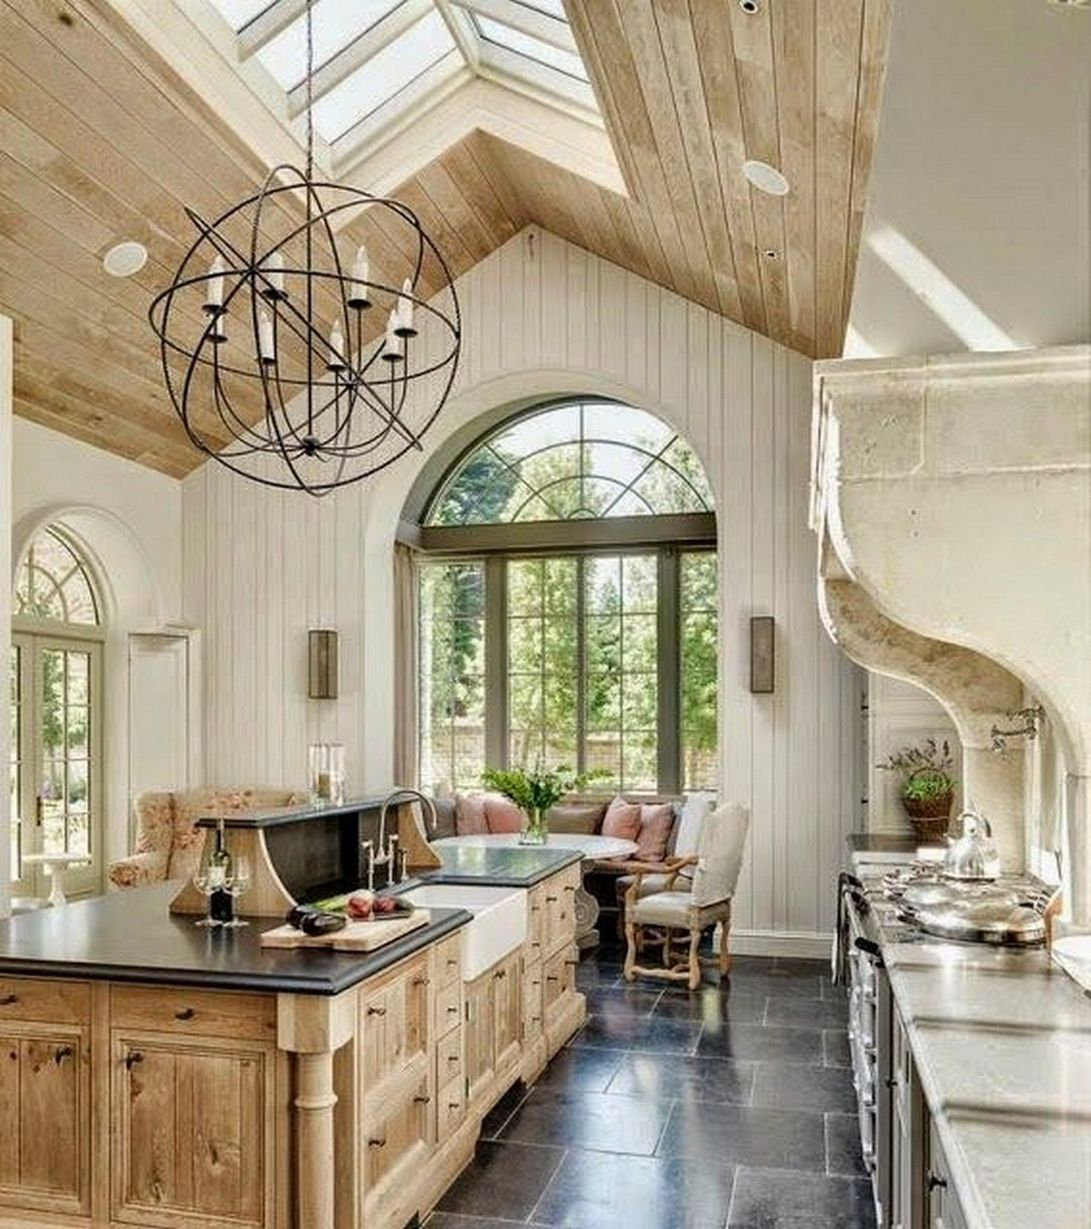 50 Best French Country Kitchens Design Ideas U0026 Remodel Pict  Http://decorspace.